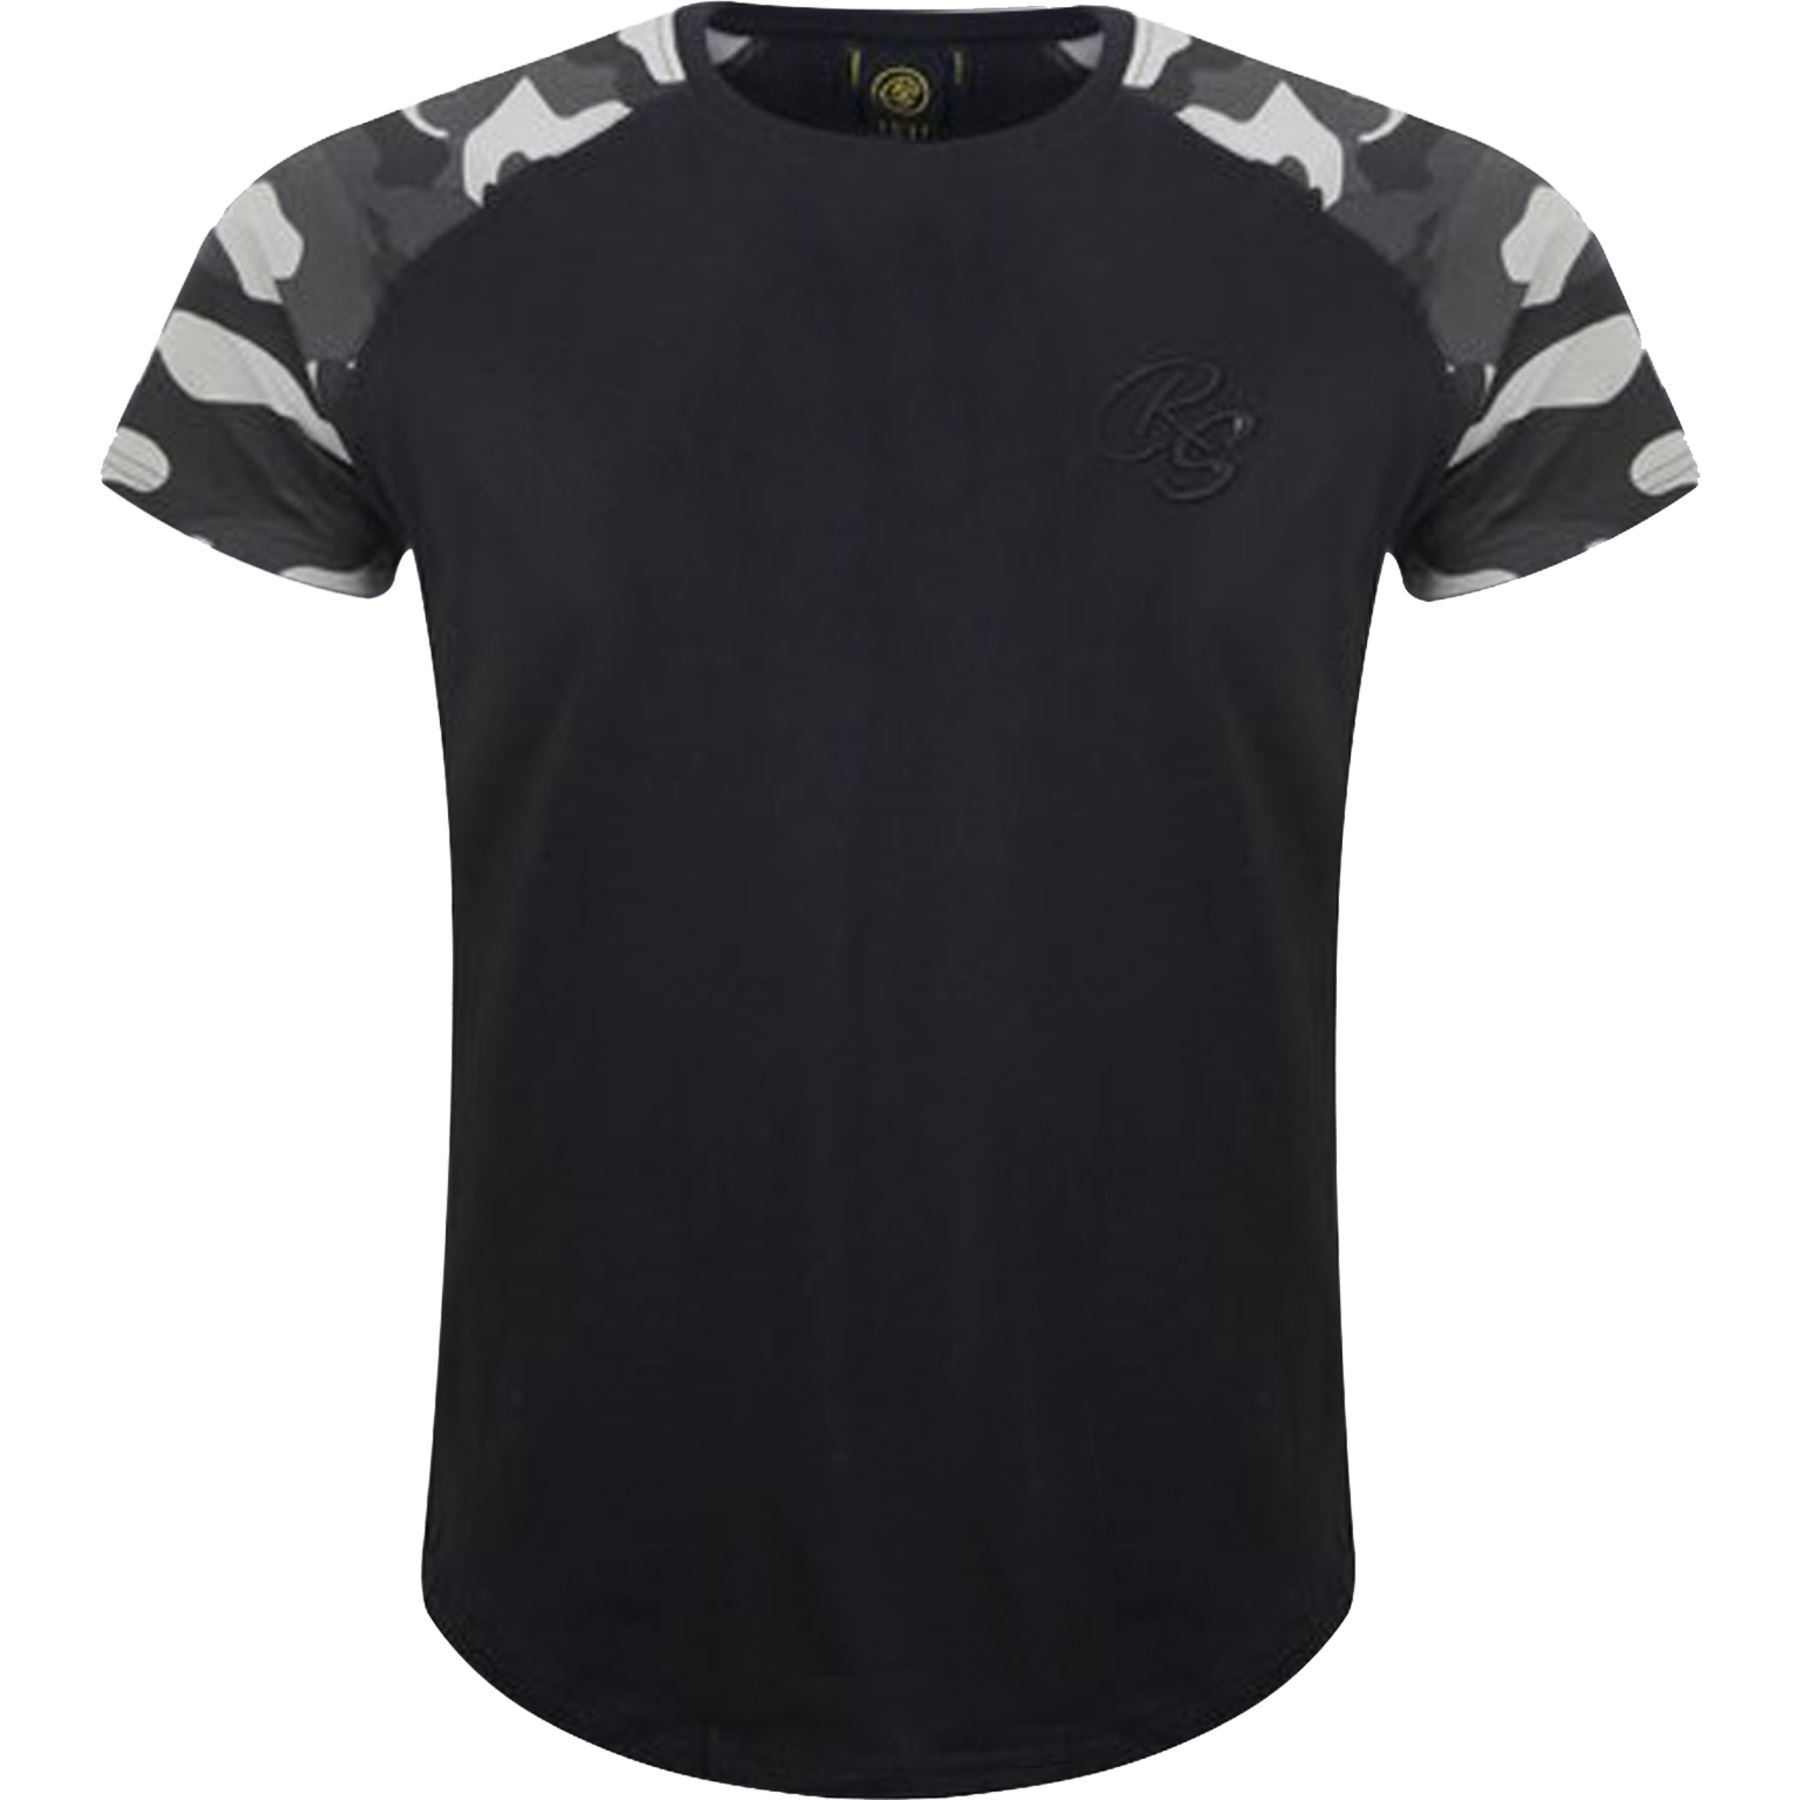 New-Mens-Crosshatch-T-Shirt-Summer-Contrast-Fade-2-Tone-Short-Sleeved-Top-Tee thumbnail 6